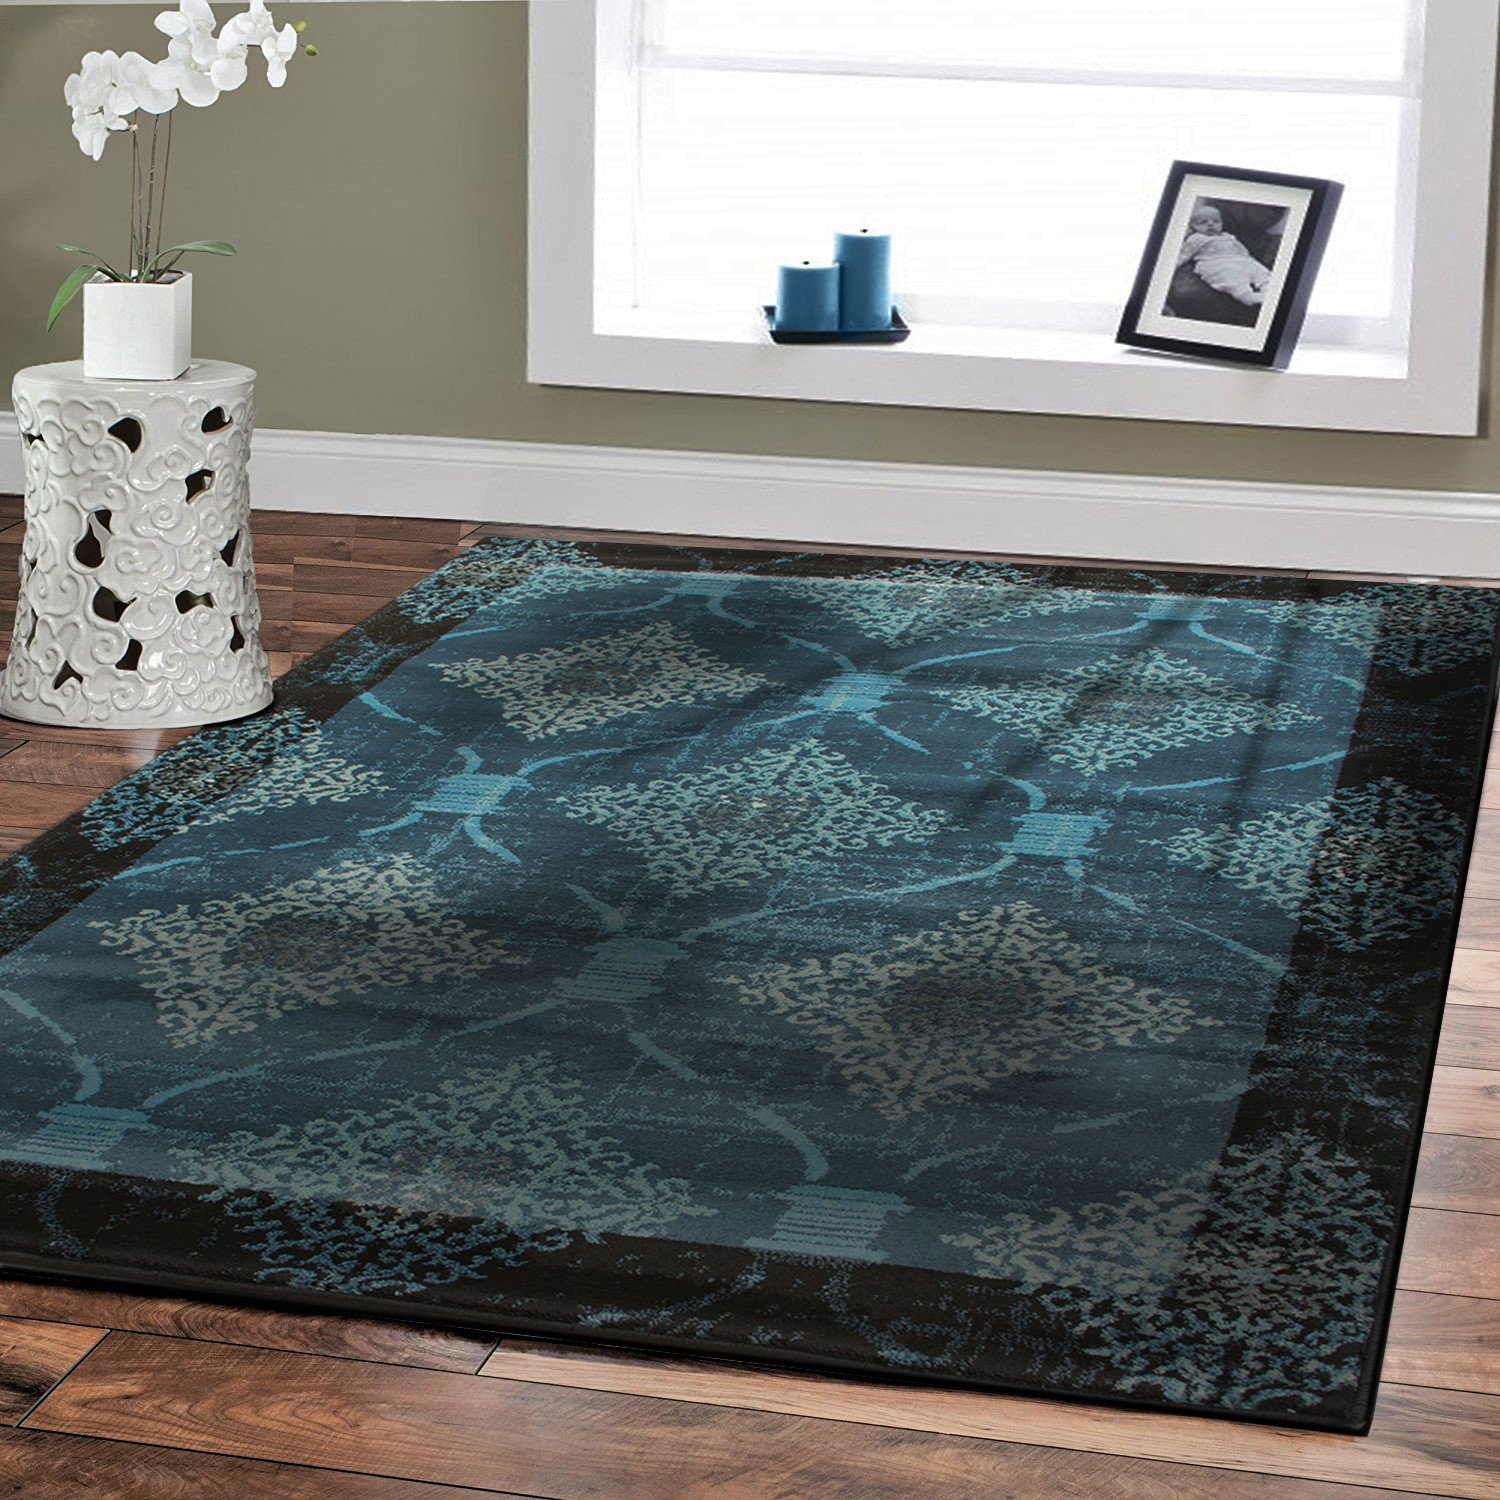 5x7 Rugs Under 50.Premium Rugs Soft Plush Modern Rugs 5x8 Contemporary Rugs Blue 5x7 Morrocan Trellis Rug Navy Blue Black Border